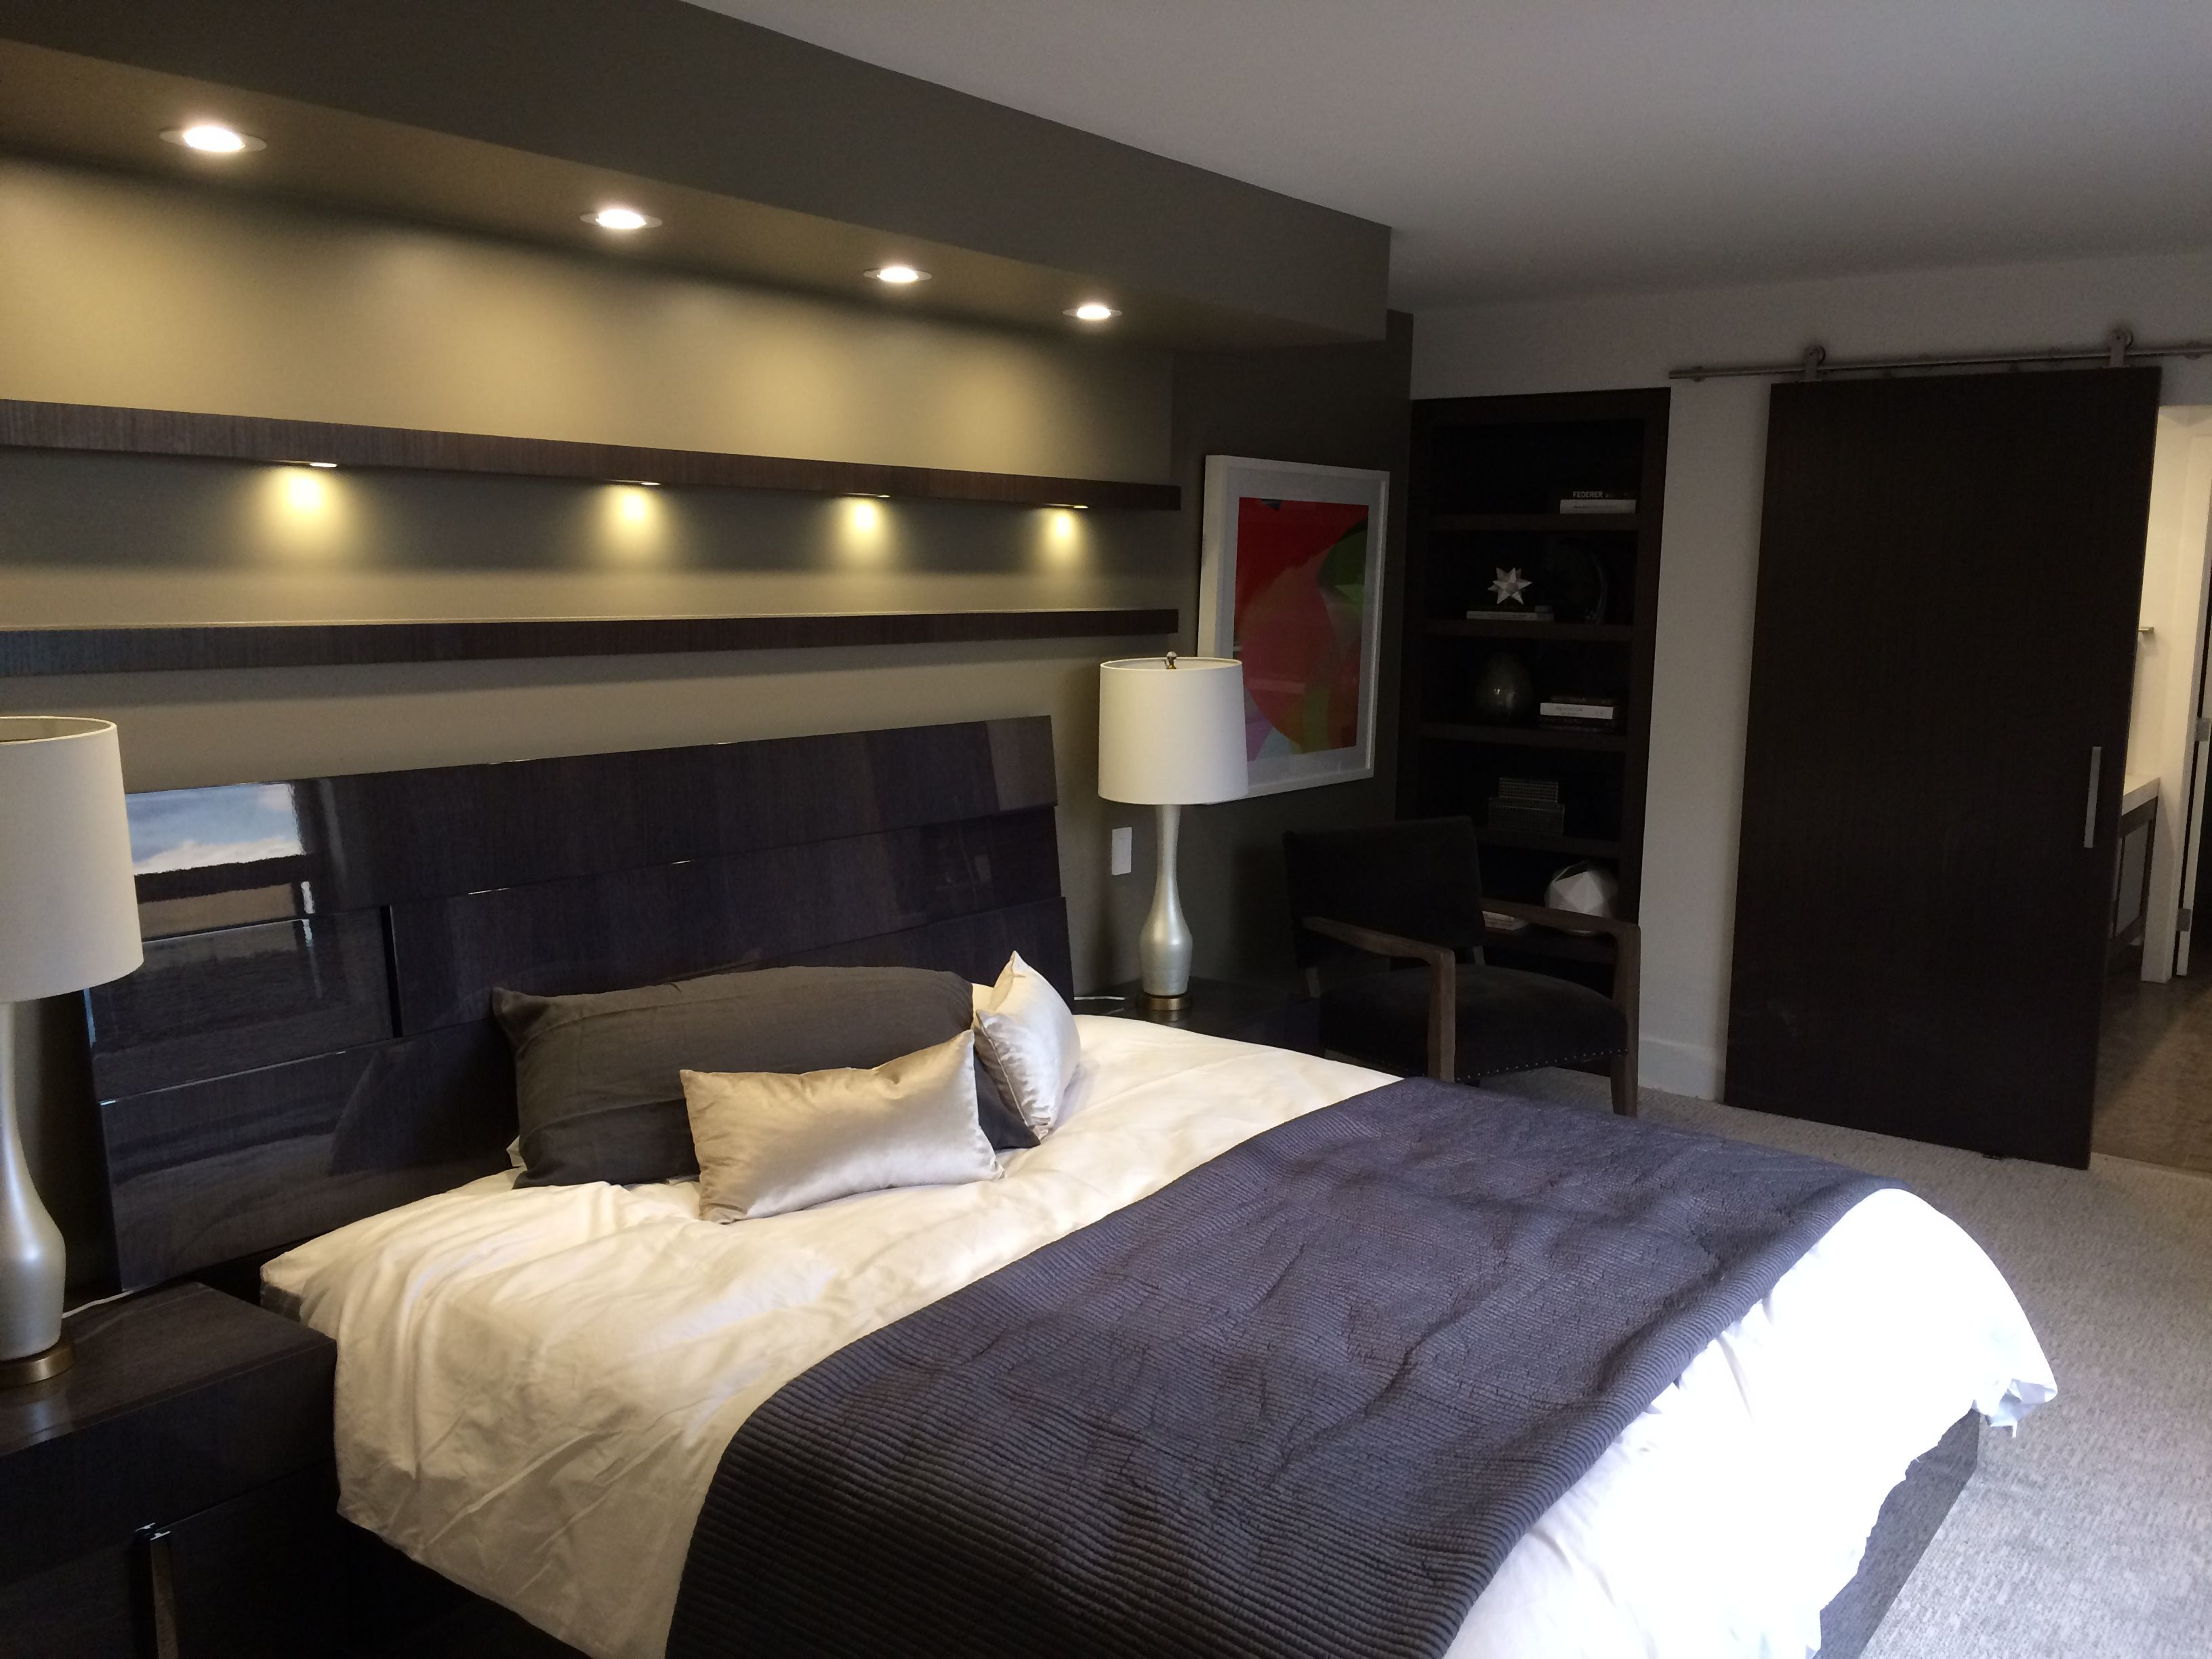 Master Suite Remodel Bulkheads With Led Lighting Barn Doors With